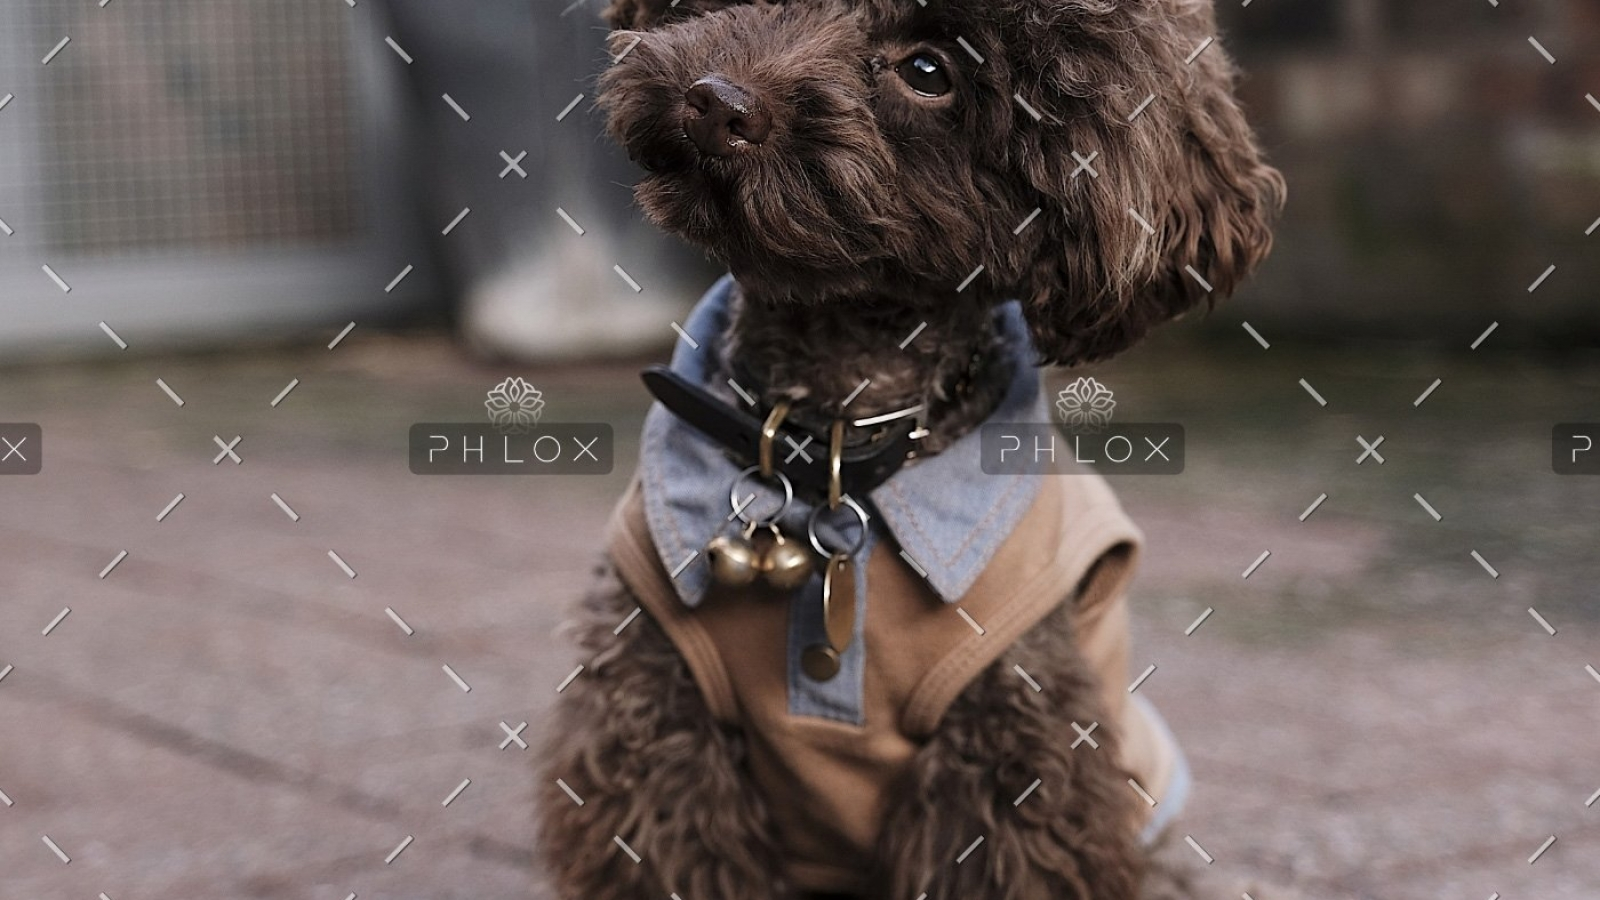 demo-attachment-511-the-poodle-gang-369918-unsplash